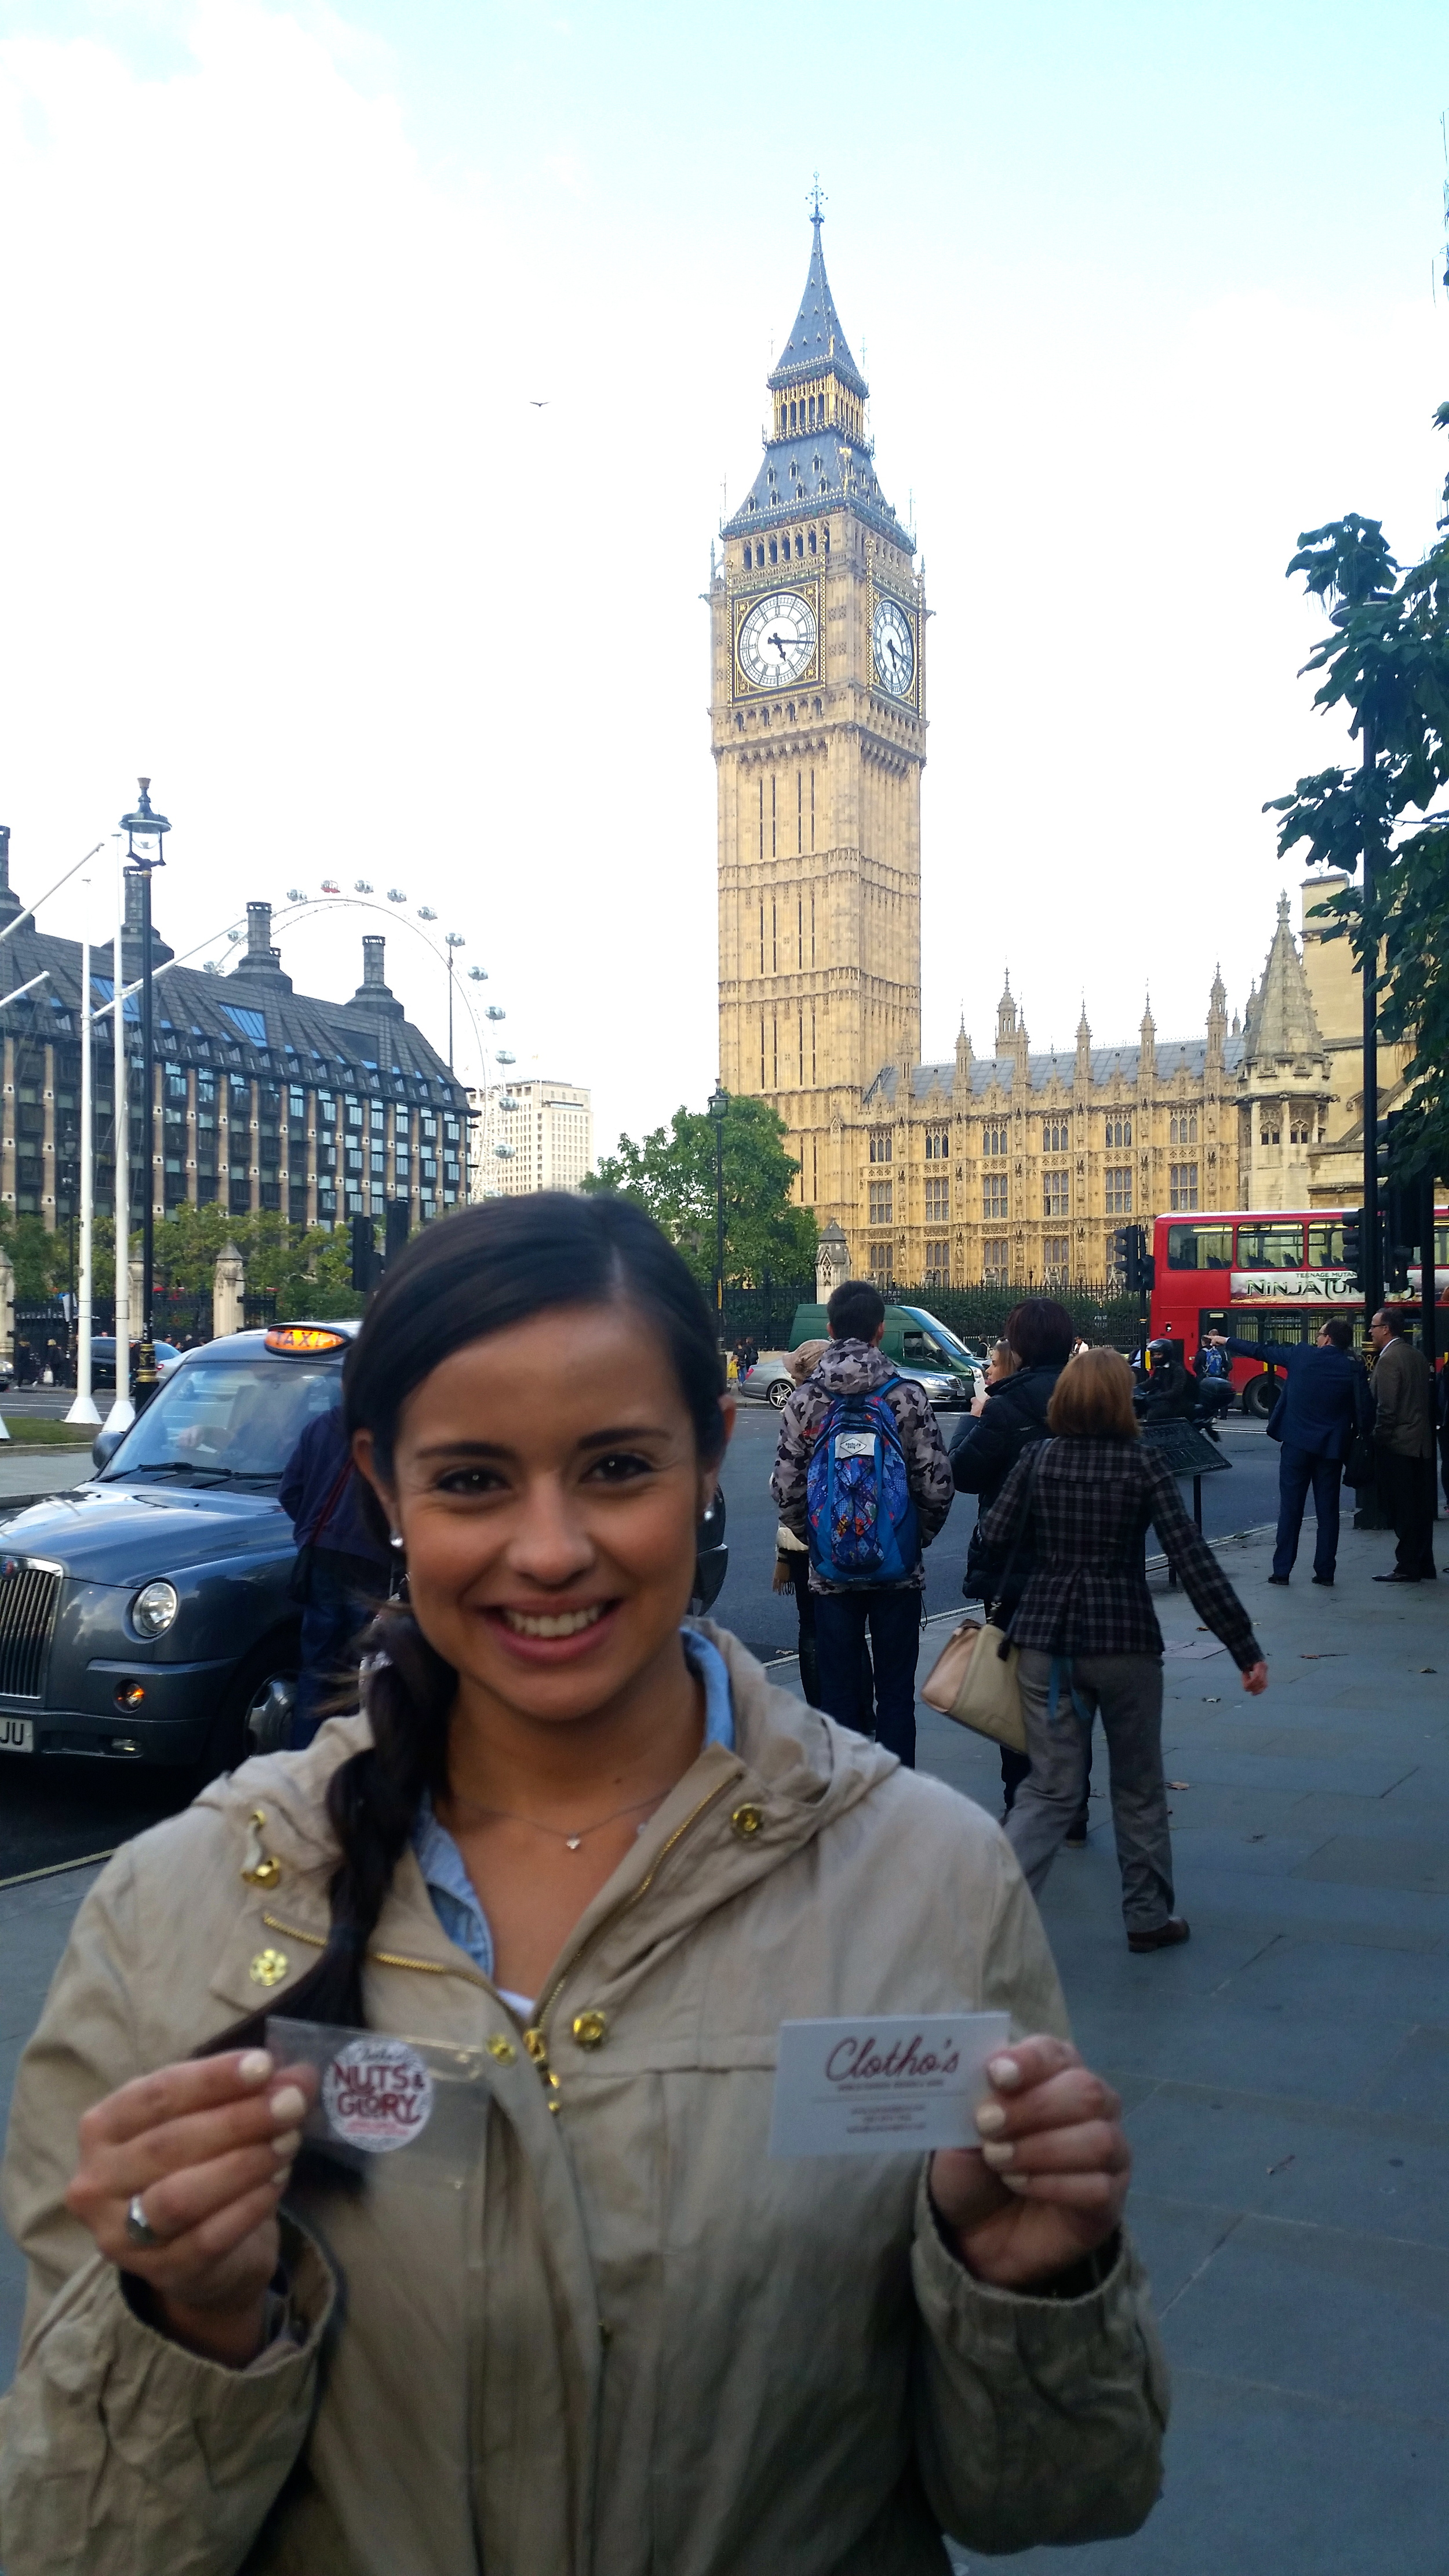 Jennifer from Houston, Texas sent this photo from London!!